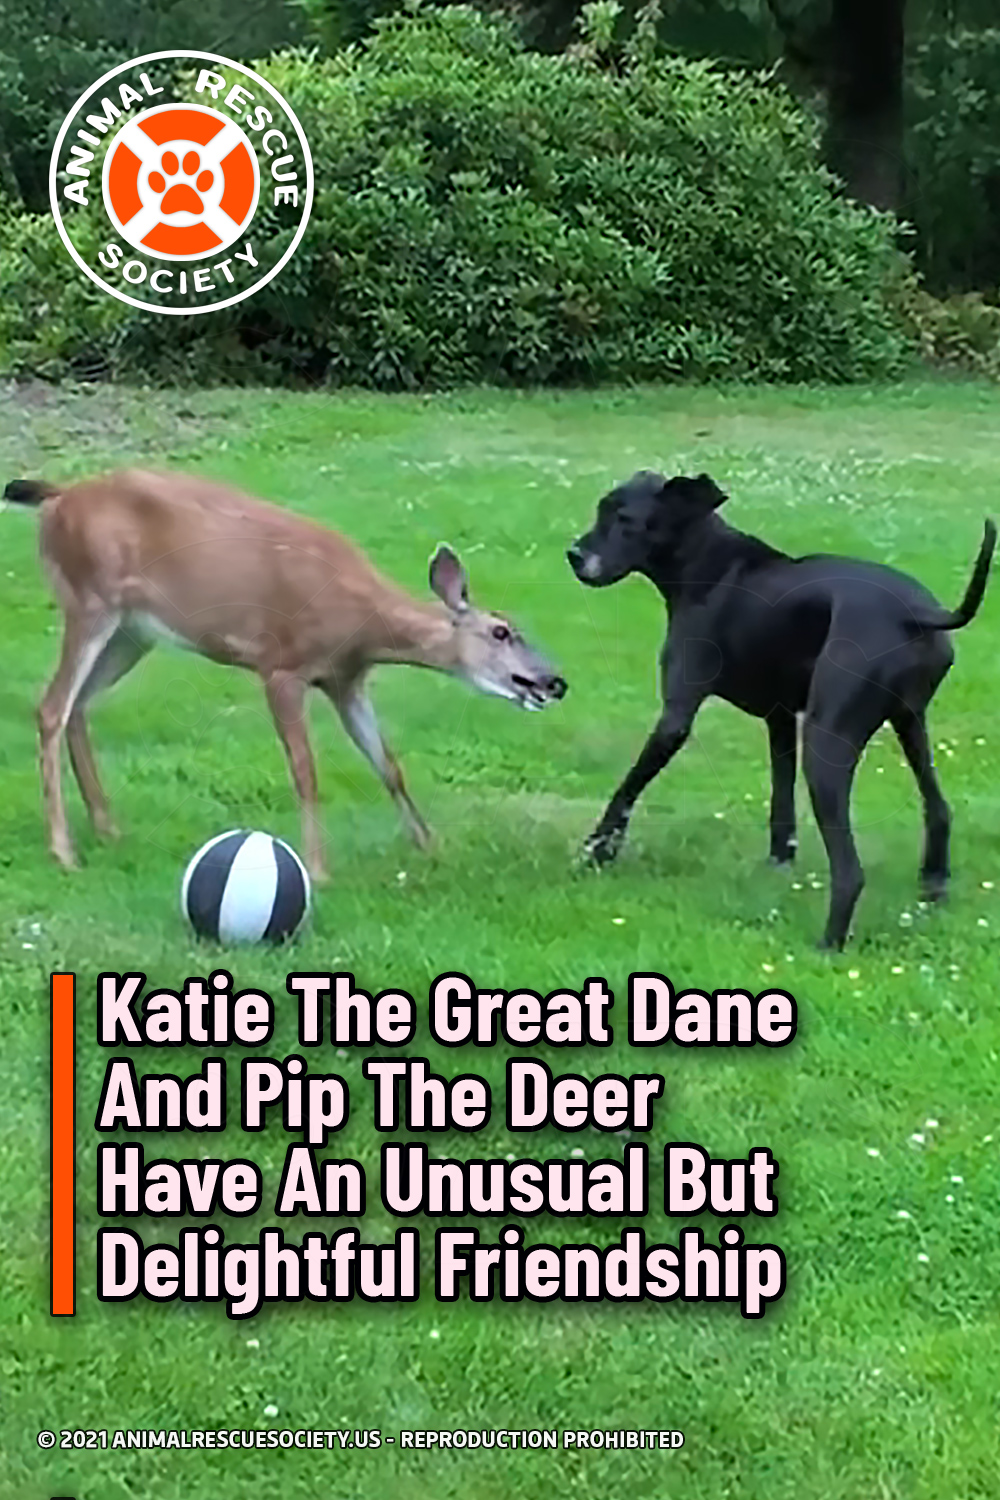 Katie The Great Dane And Pip The Deer Have An Unusual But Delightful Friendship